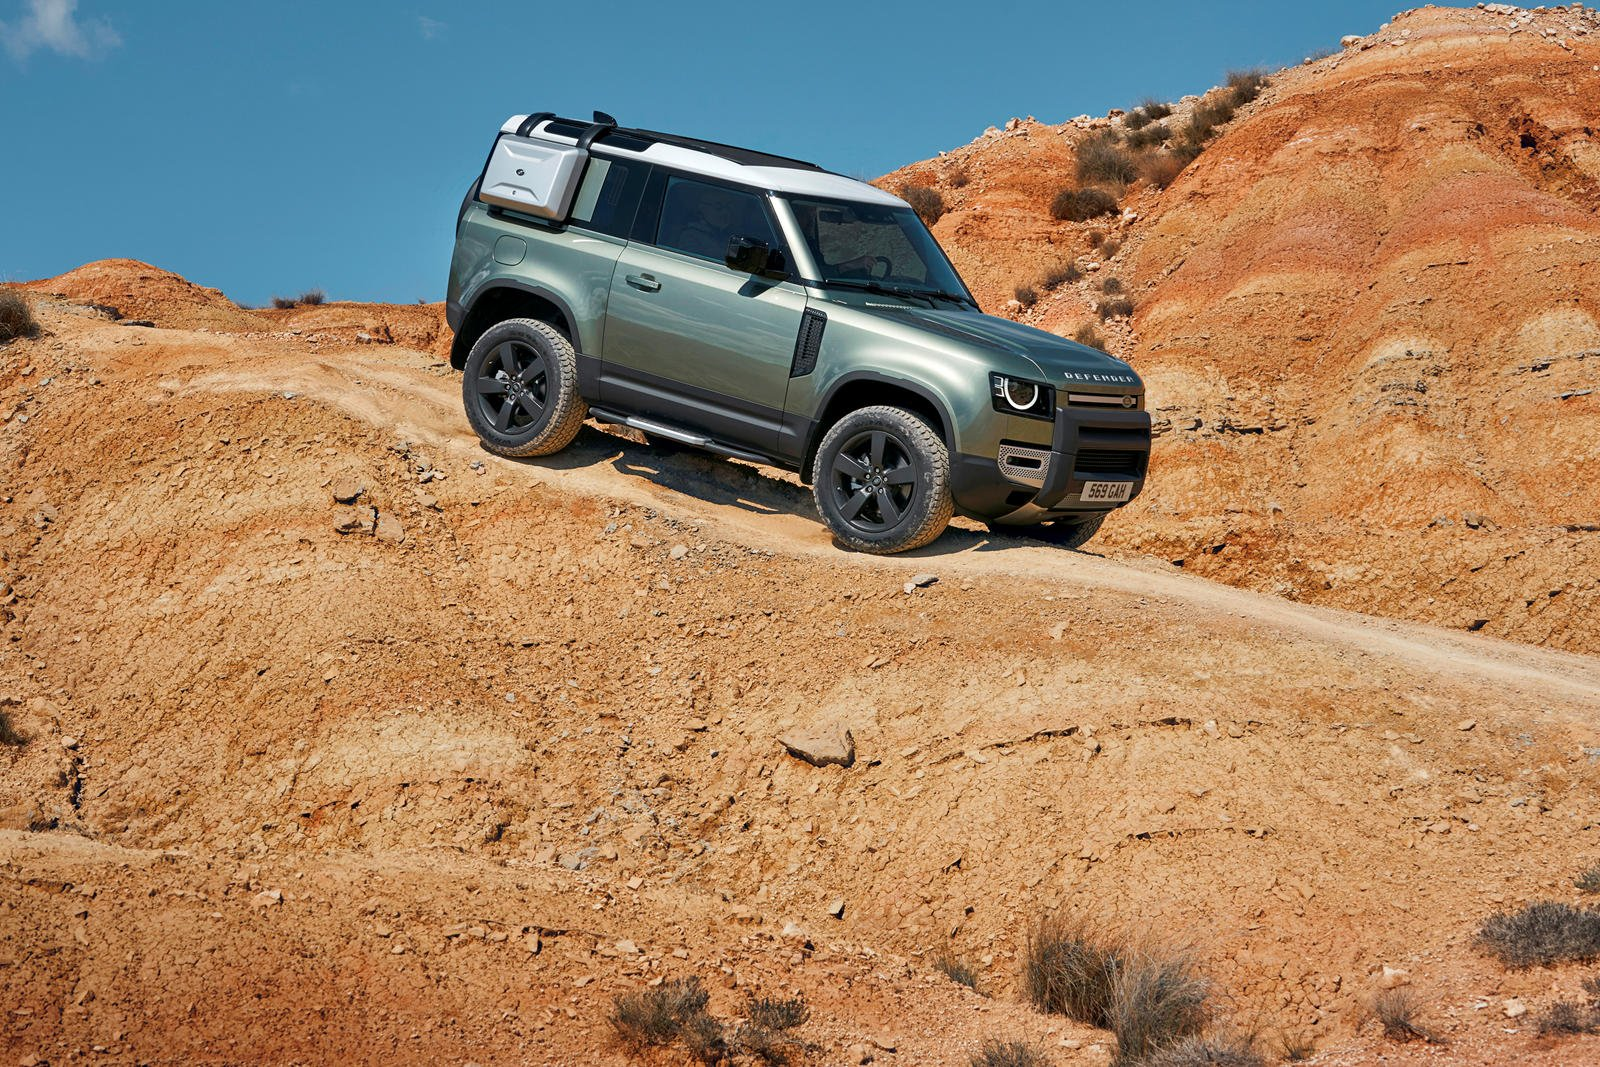 Land Rover Defender 2020 xuống dốc